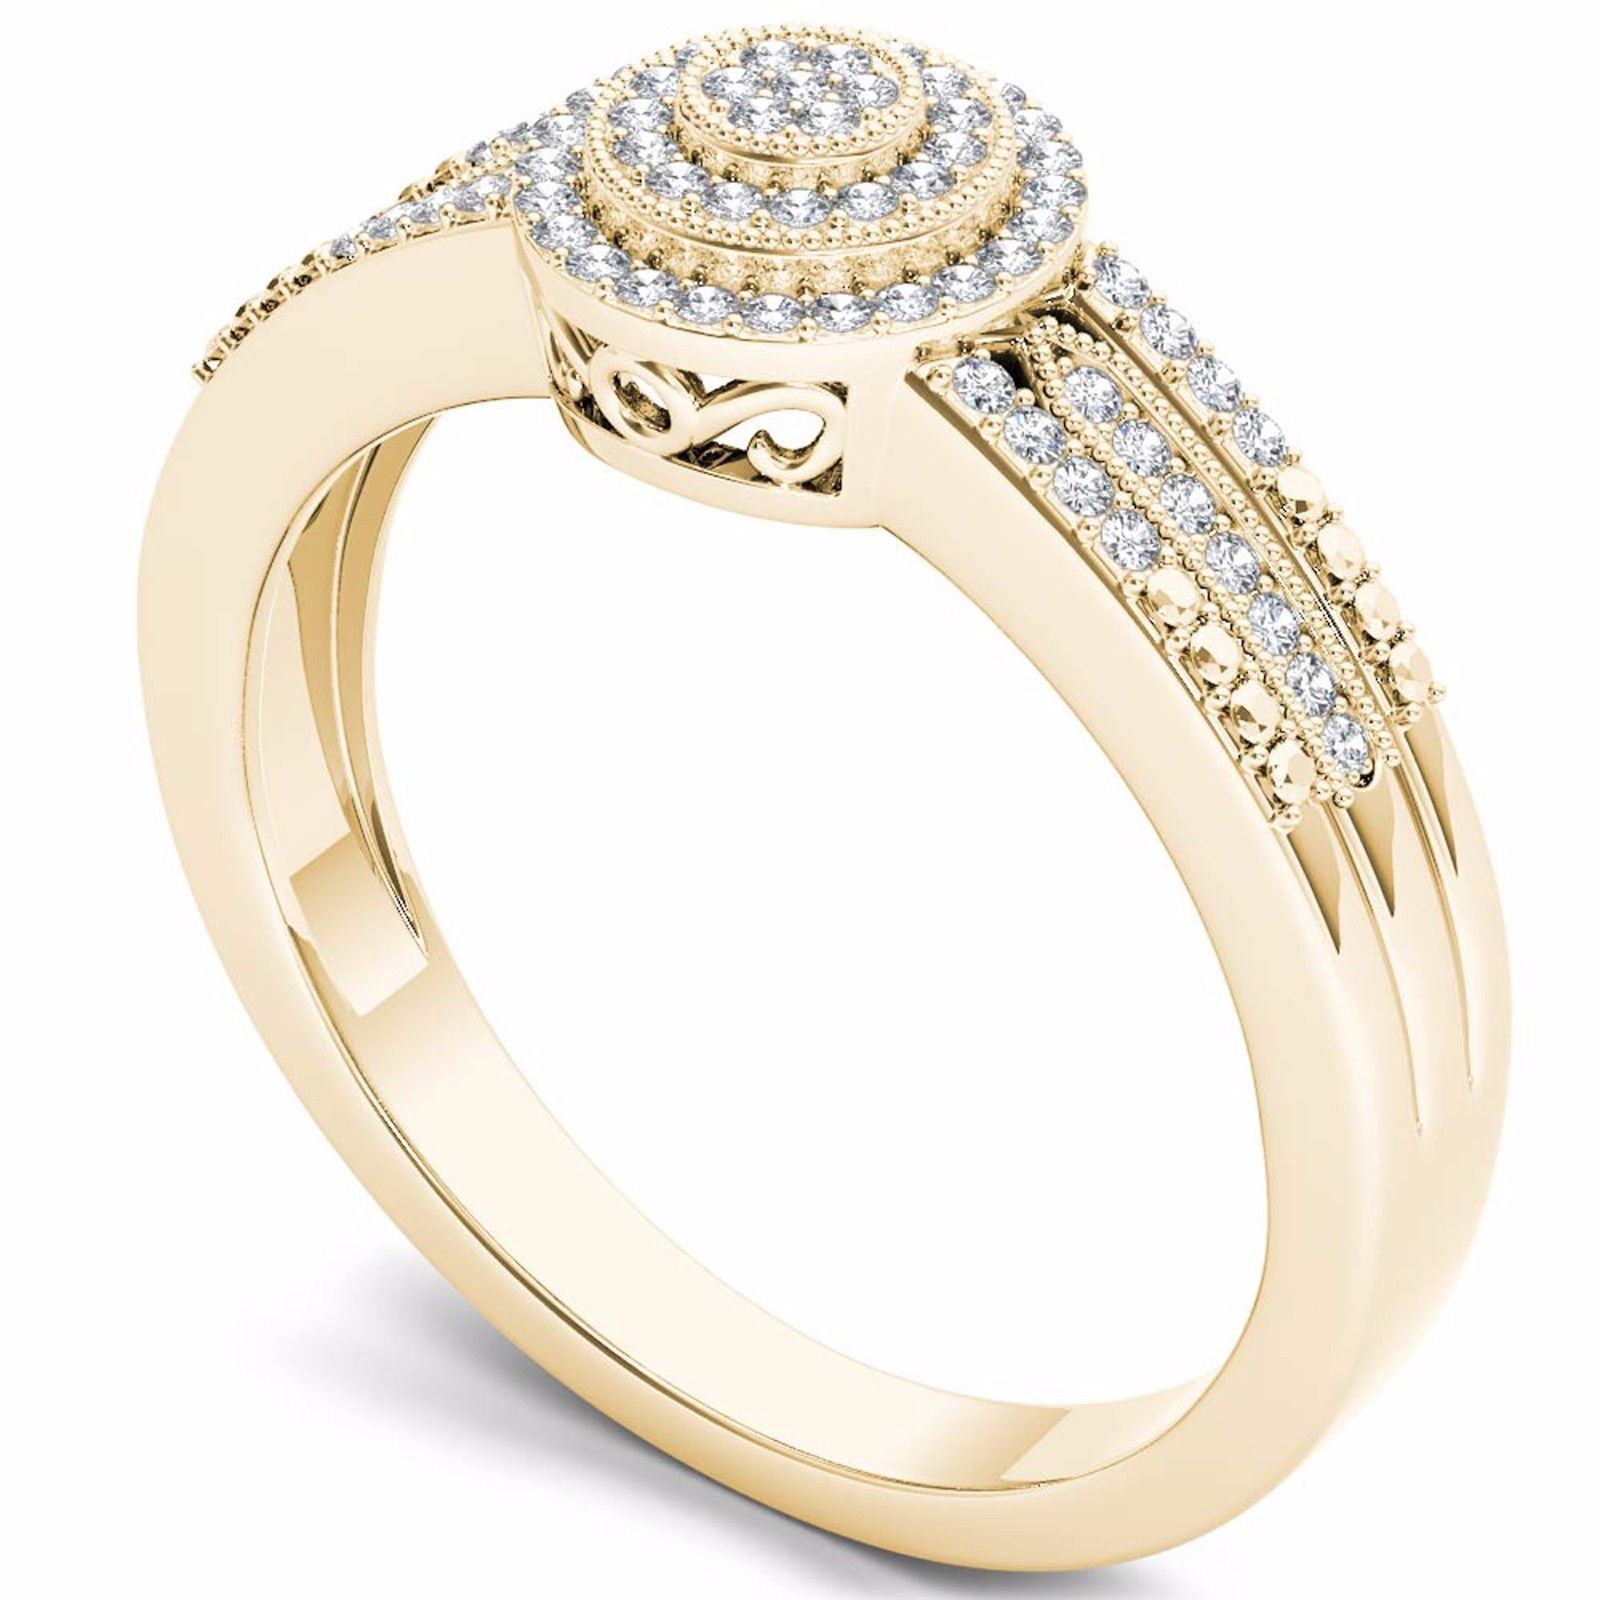 IGI Certified 14k Yellow Gold 0.18 Ct Diamond Cluster Halo Engagement Ring